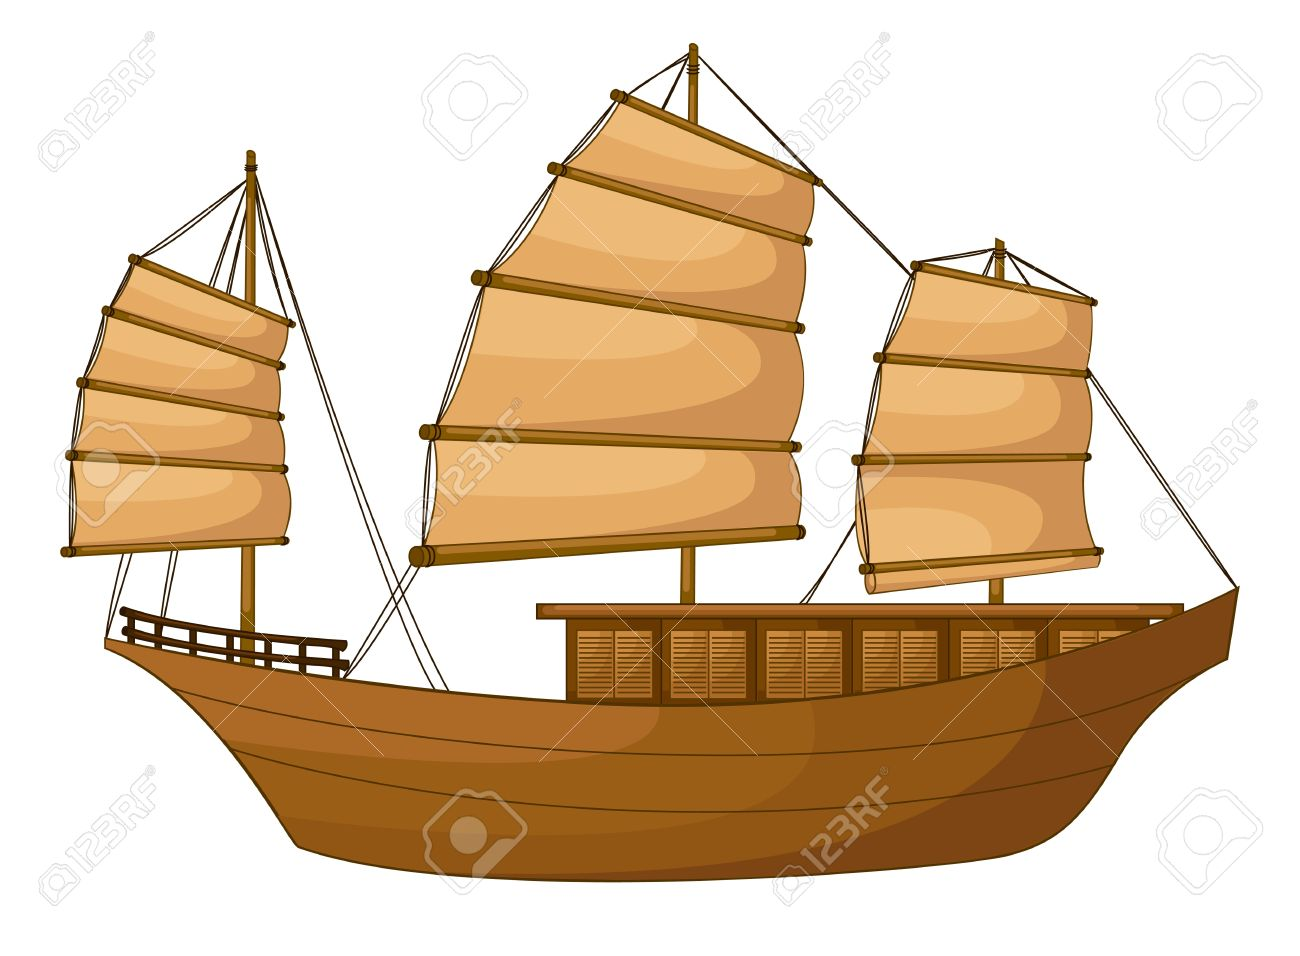 Illustration Of Full Rigged Ship On A White Background Royalty.